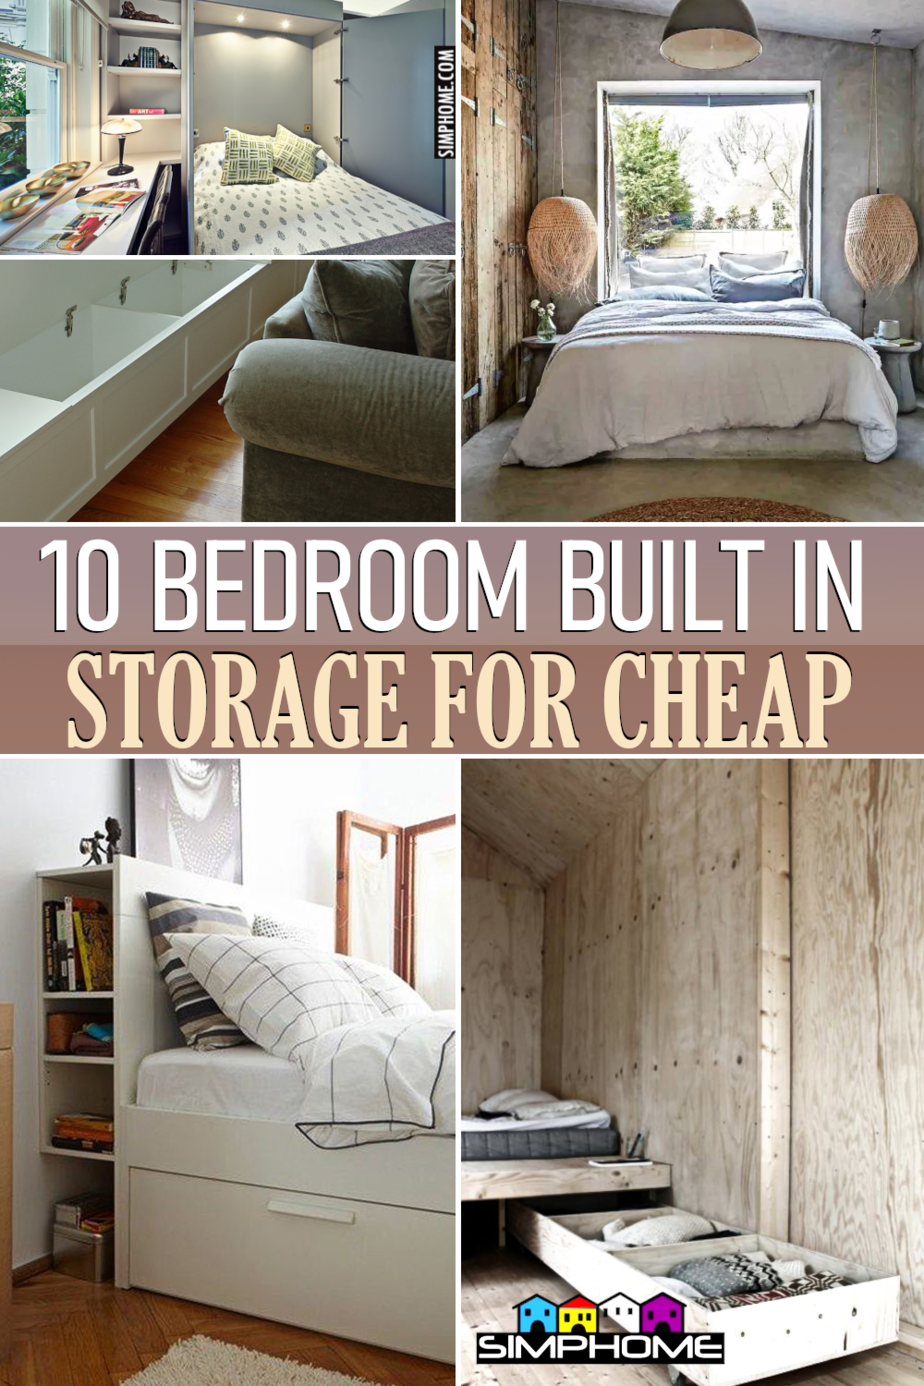 10 Bedroom Built in Storage Ideas via Simphome.comFeatured